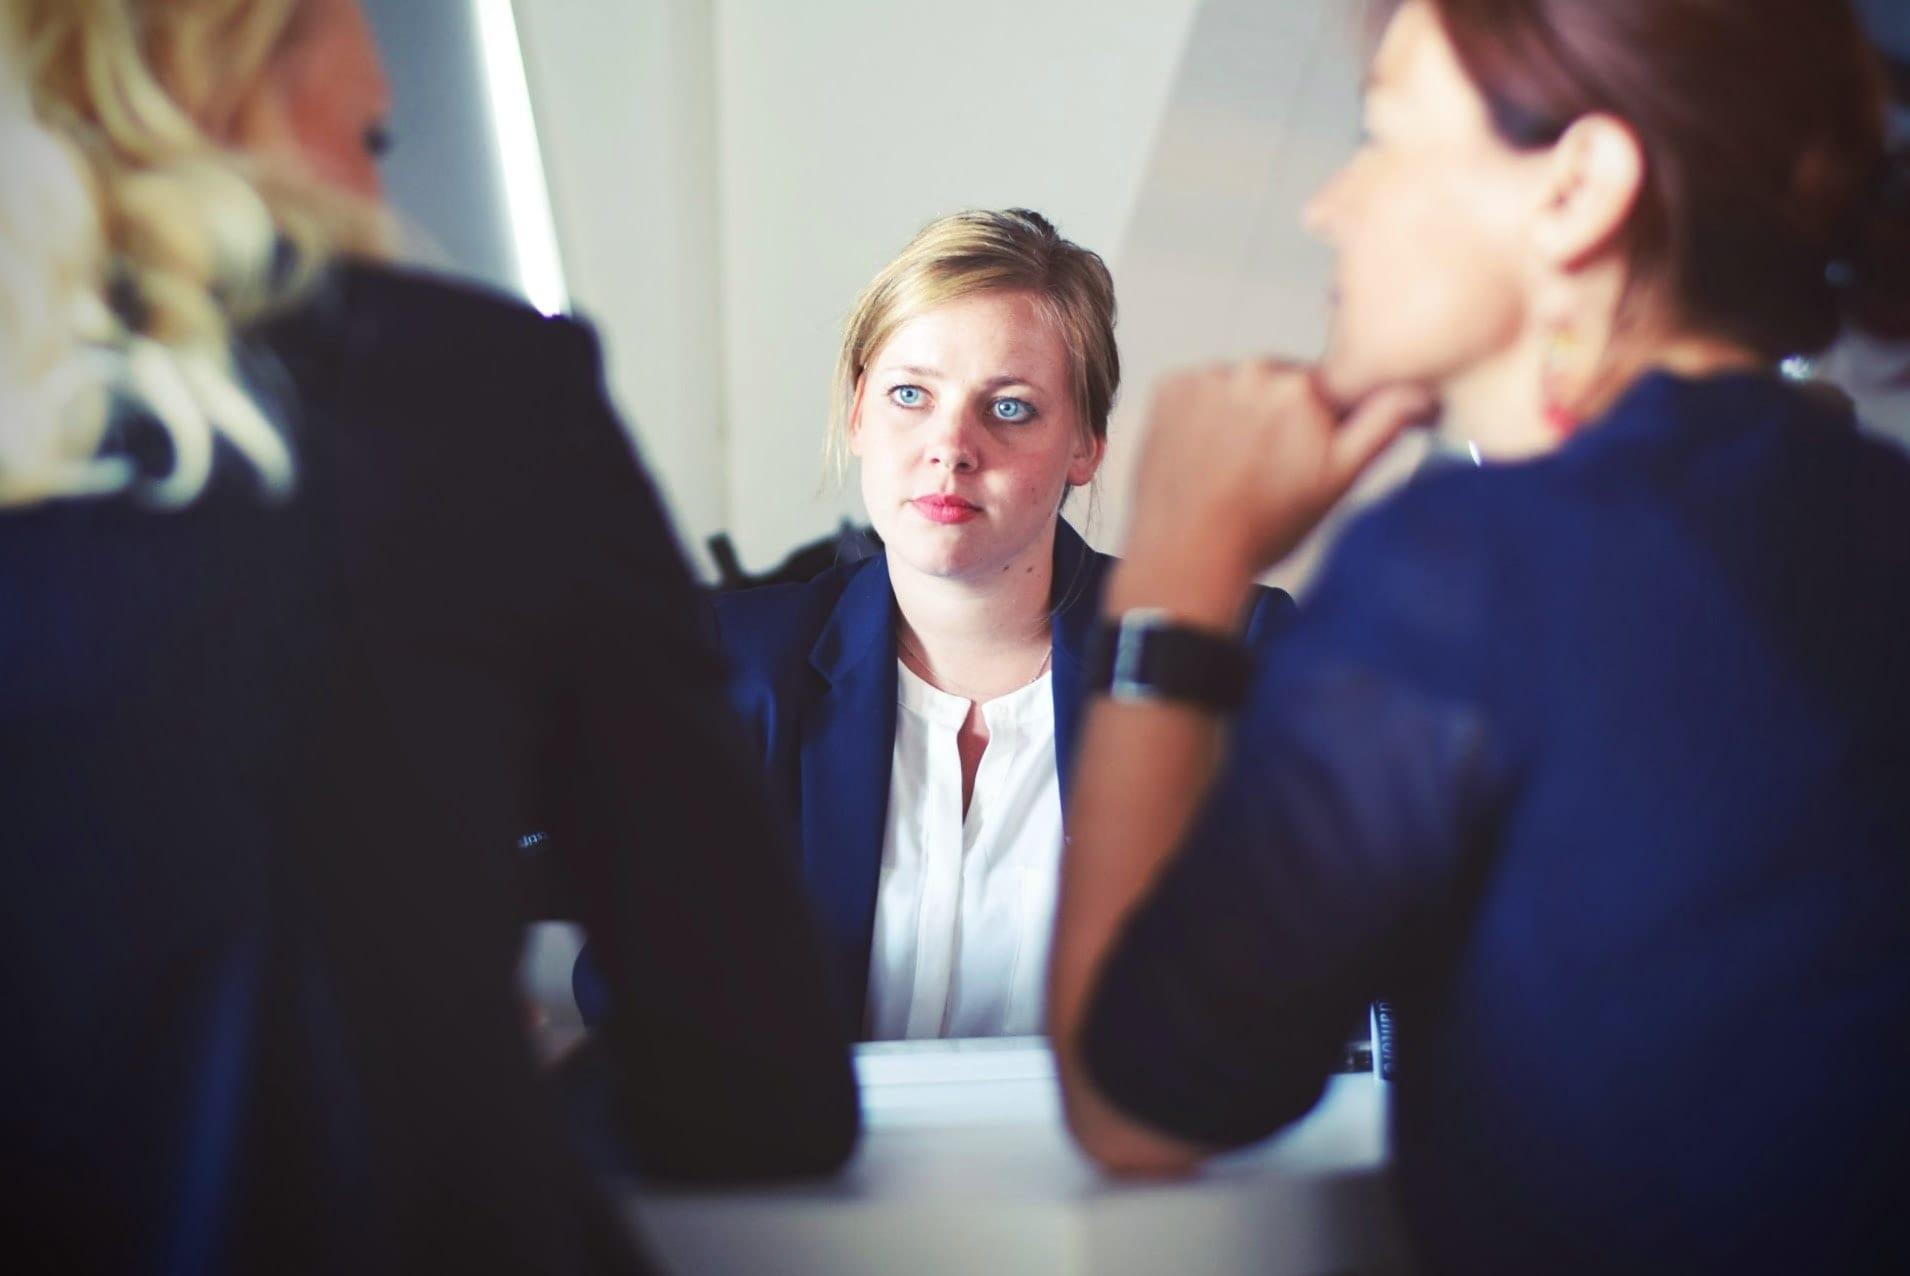 Divorce lawyer in a meeting